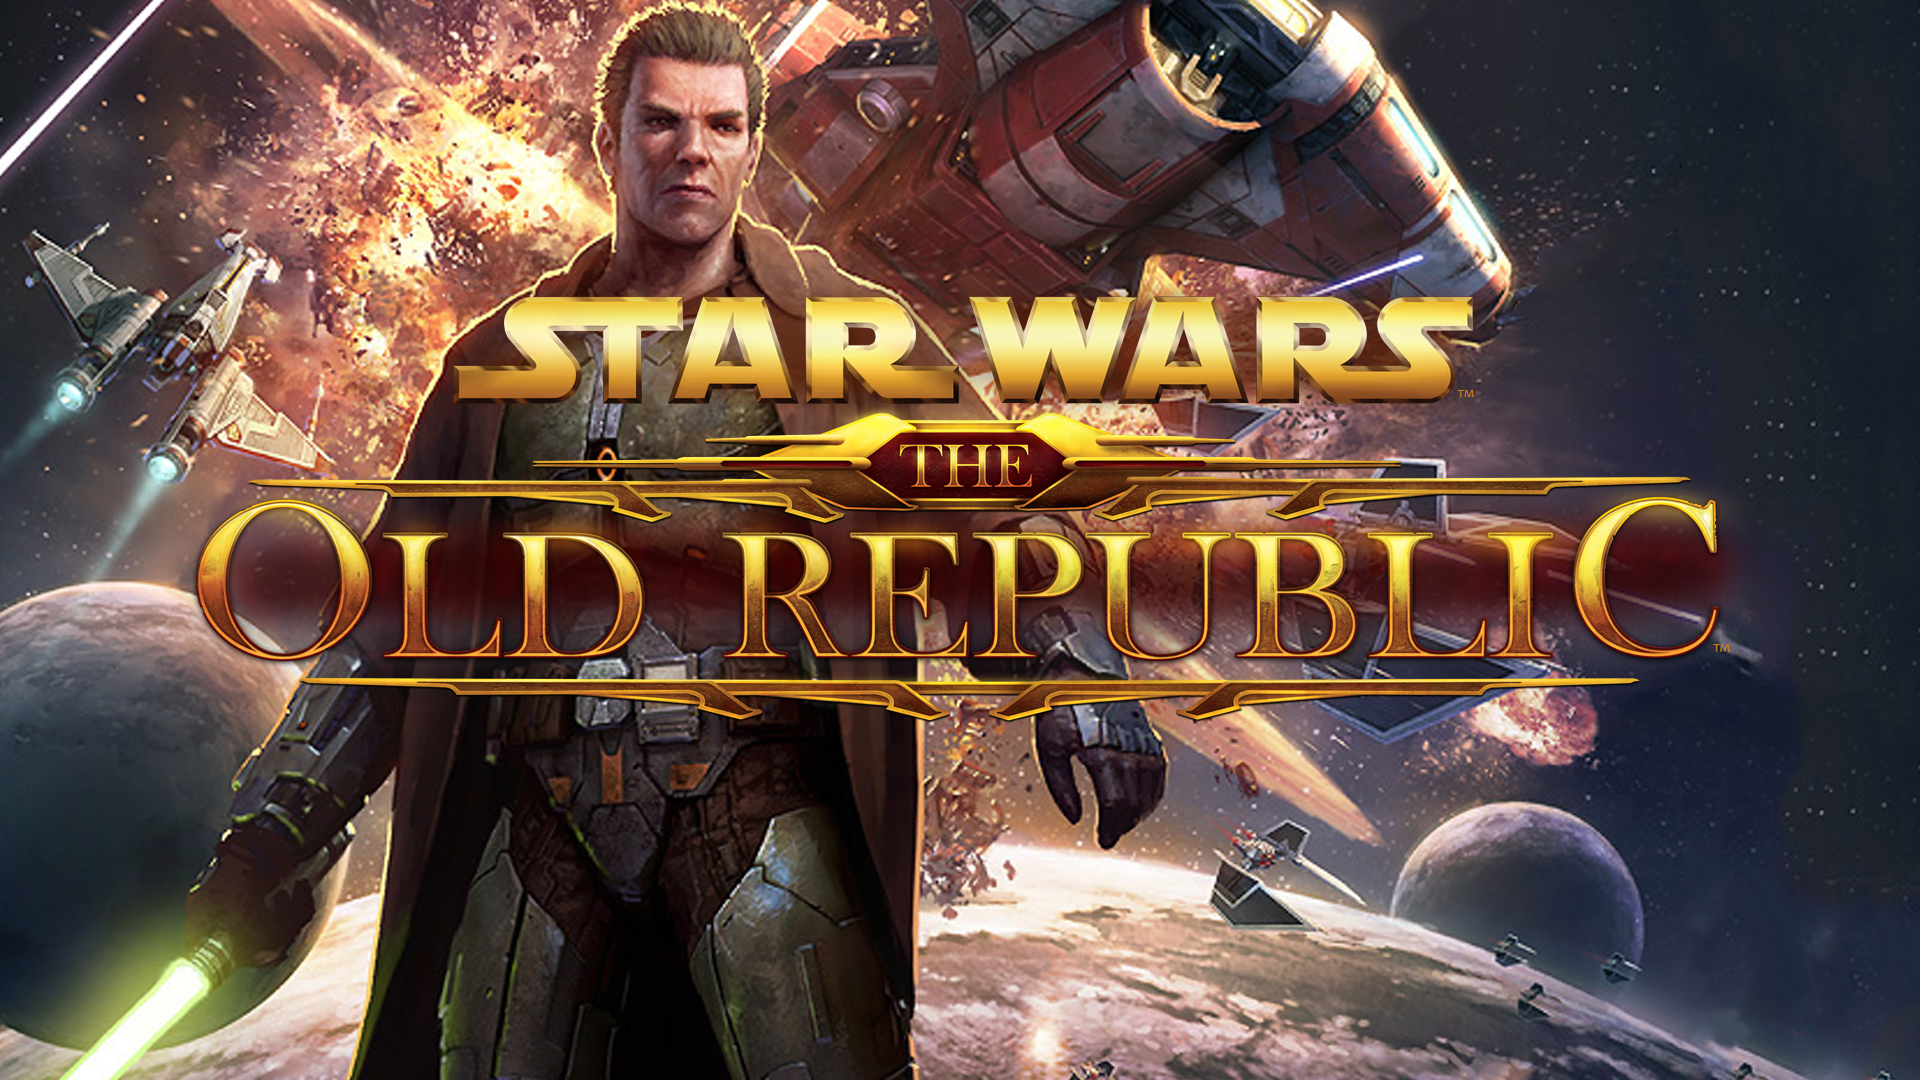 Is swtor worth it in 2019